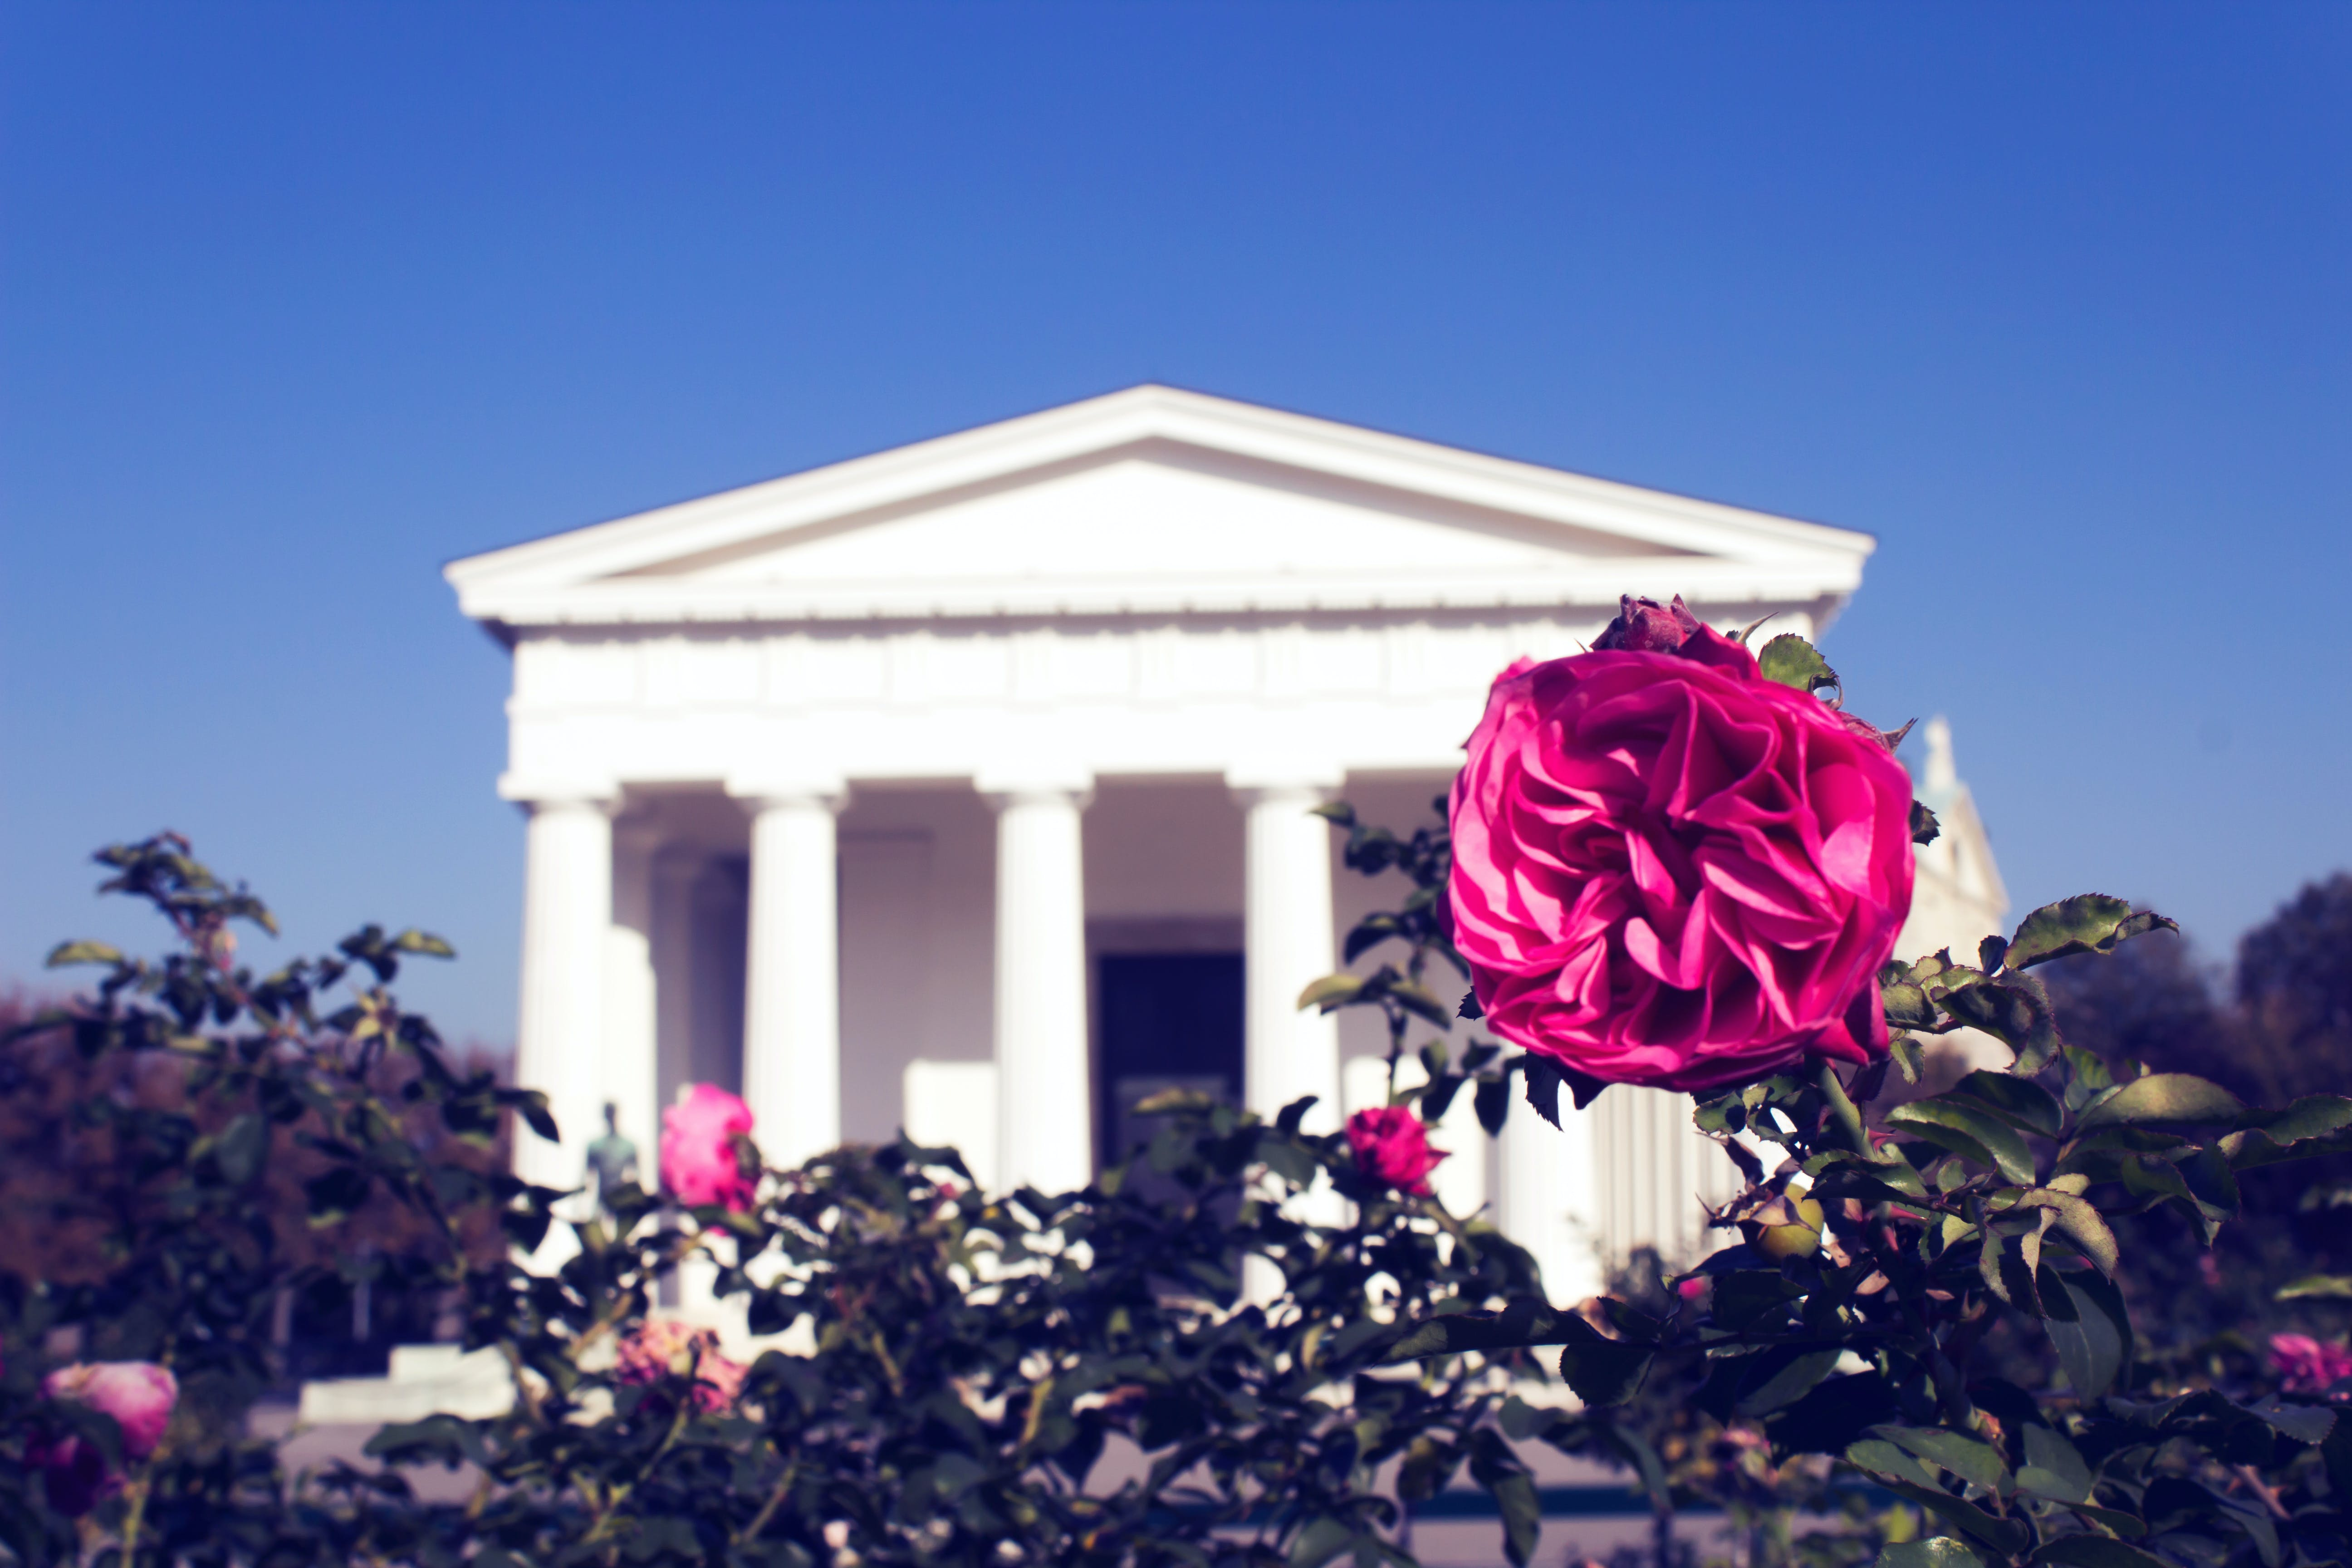 Photo of Red Rose with White Concrete Building in the Background